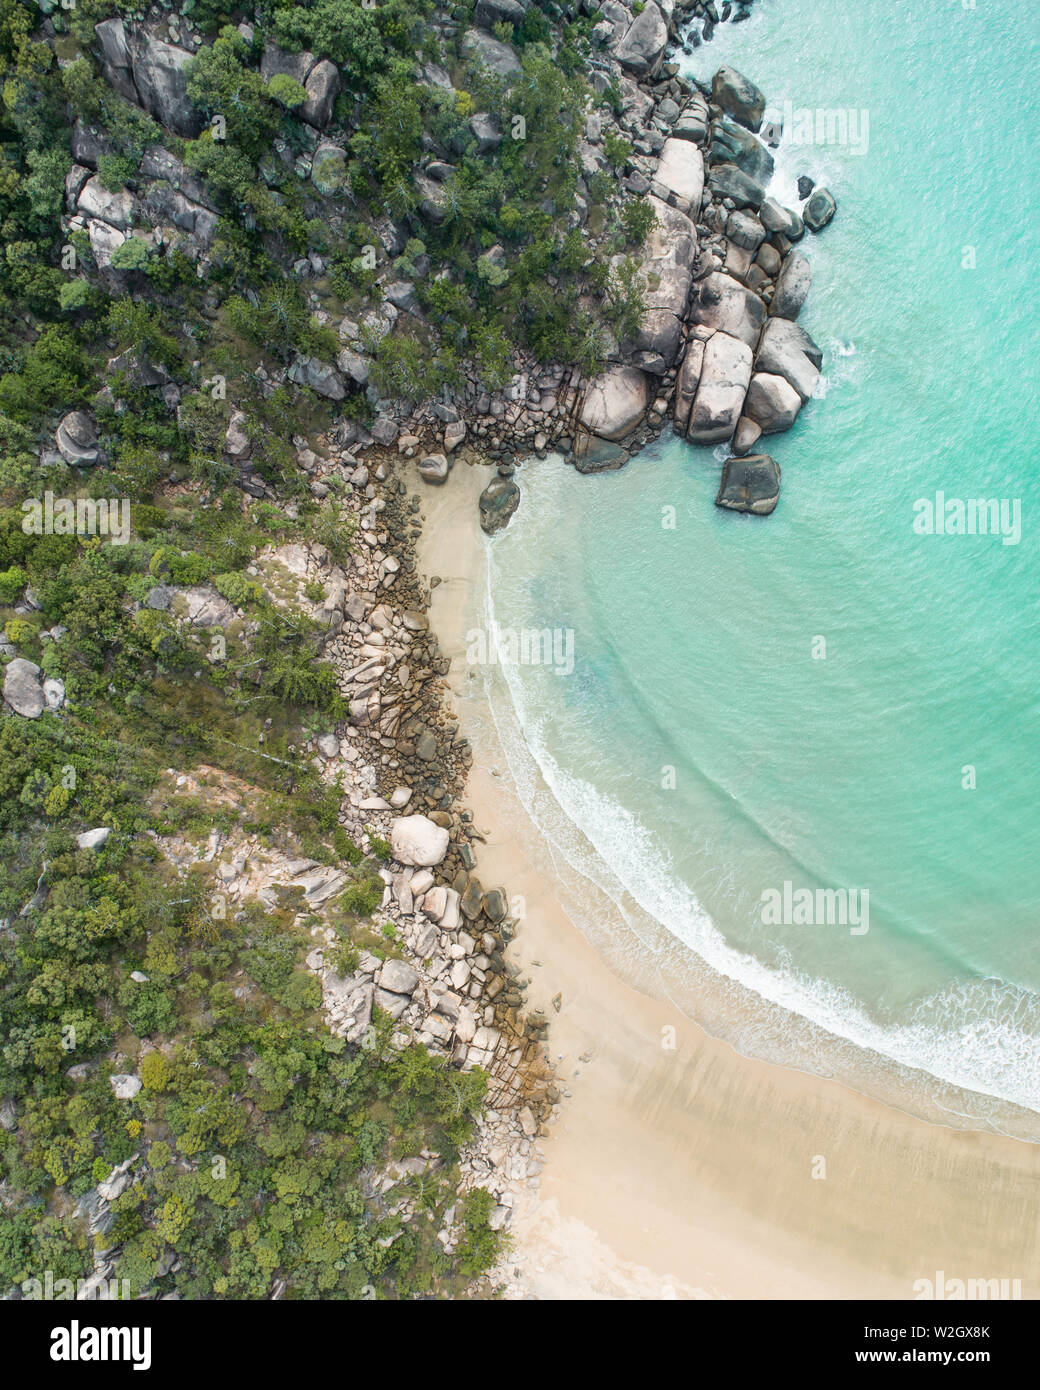 Aerial views over a tropical island in a middle of an archipelago. Drone shots over Magnetic island in north queensland and near the great barrier ree Stock Photo